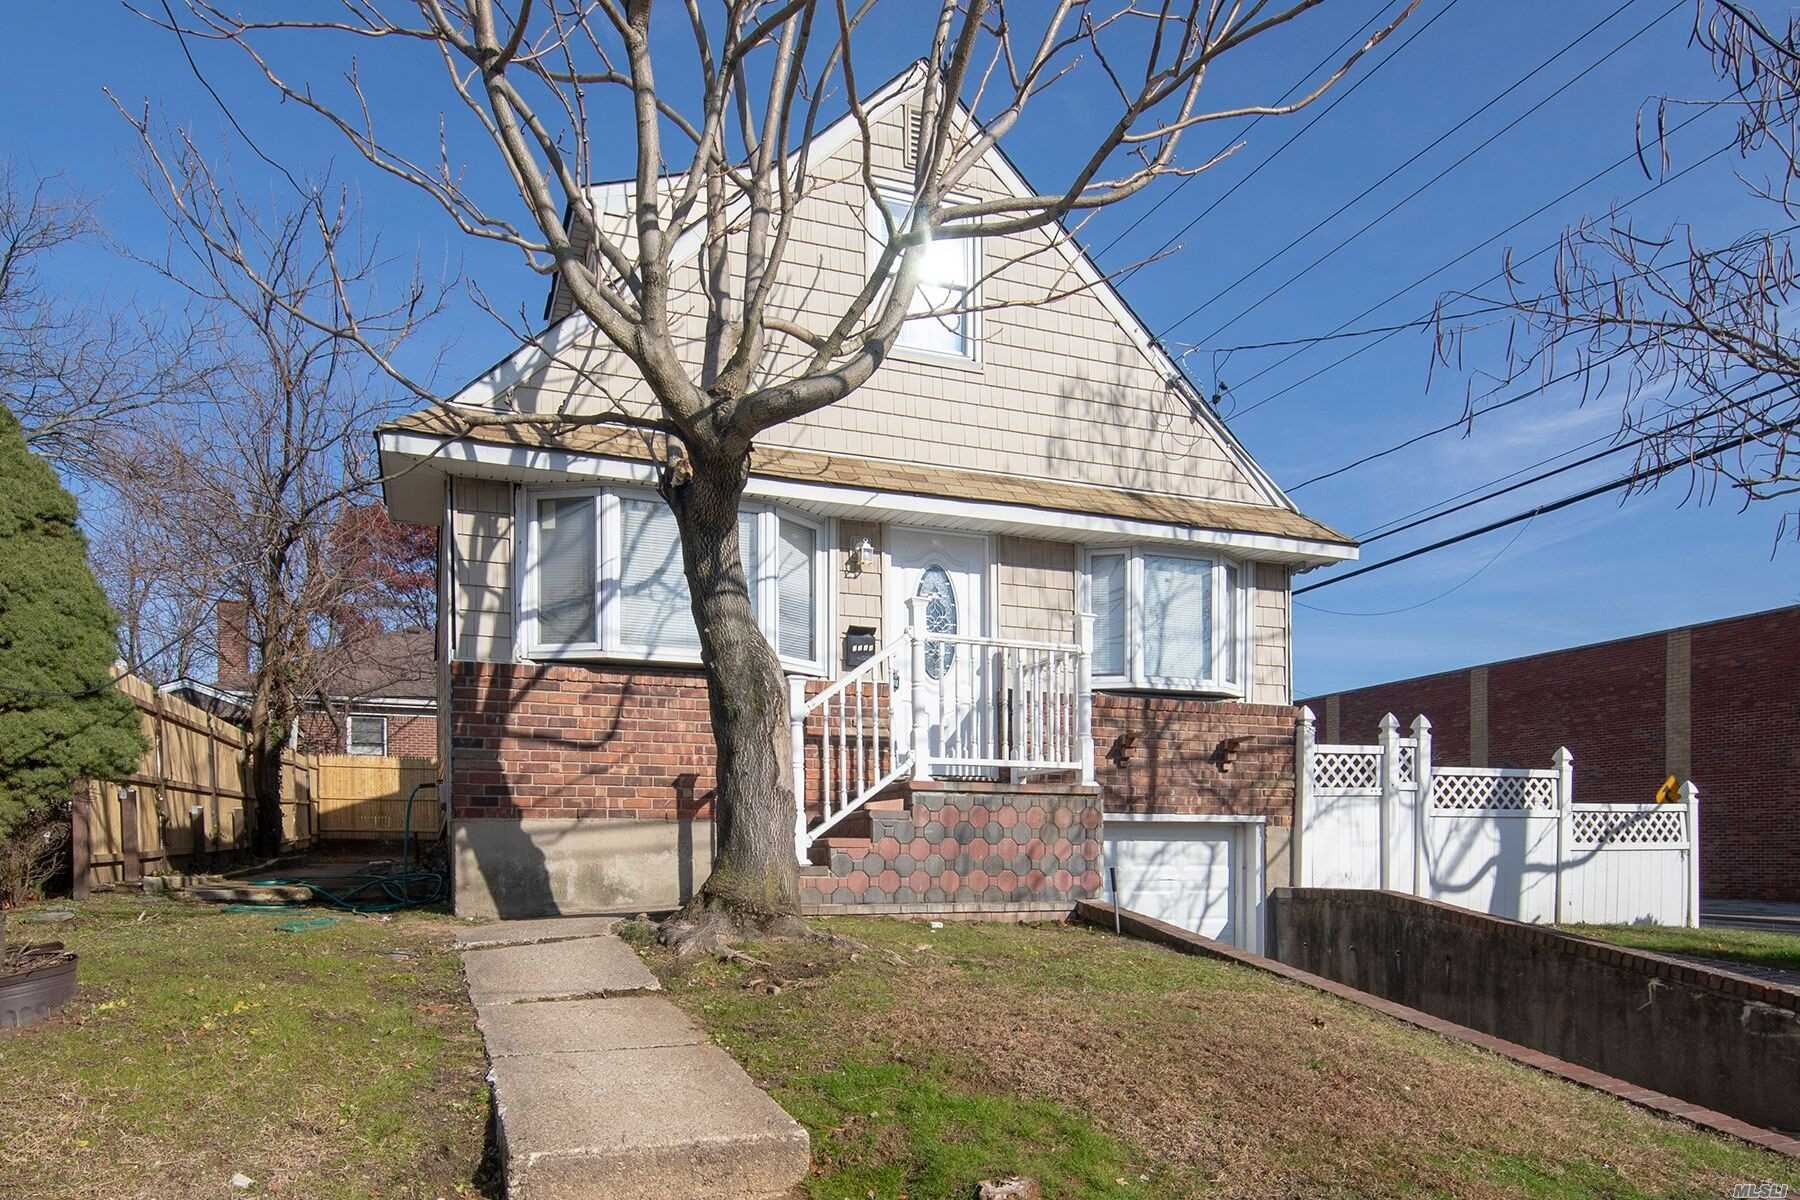 Beautiful Fully Updated 4 Bedroom, 3 Bath House In The Heart Of Elmont! Valley Stream School District. 1st Floor Has Master Bed, 2nd Bedroom Full Bath , Living Room / Dinning Room W/ Kitchen + Side Entrance To Spacious Back Yard! 2nd Floor Has 2 Spacious Bedrooms And Full Bath. Full Finished Basement Has A Nice Sized Open Space For Play Area Or Den, 2 Rooms And A 3rd Bathroom With Separate Entrance! 1 Car Garage Attached. New Boiler, New Appliances, Washer / Dryer Hook Up! Great House For All!